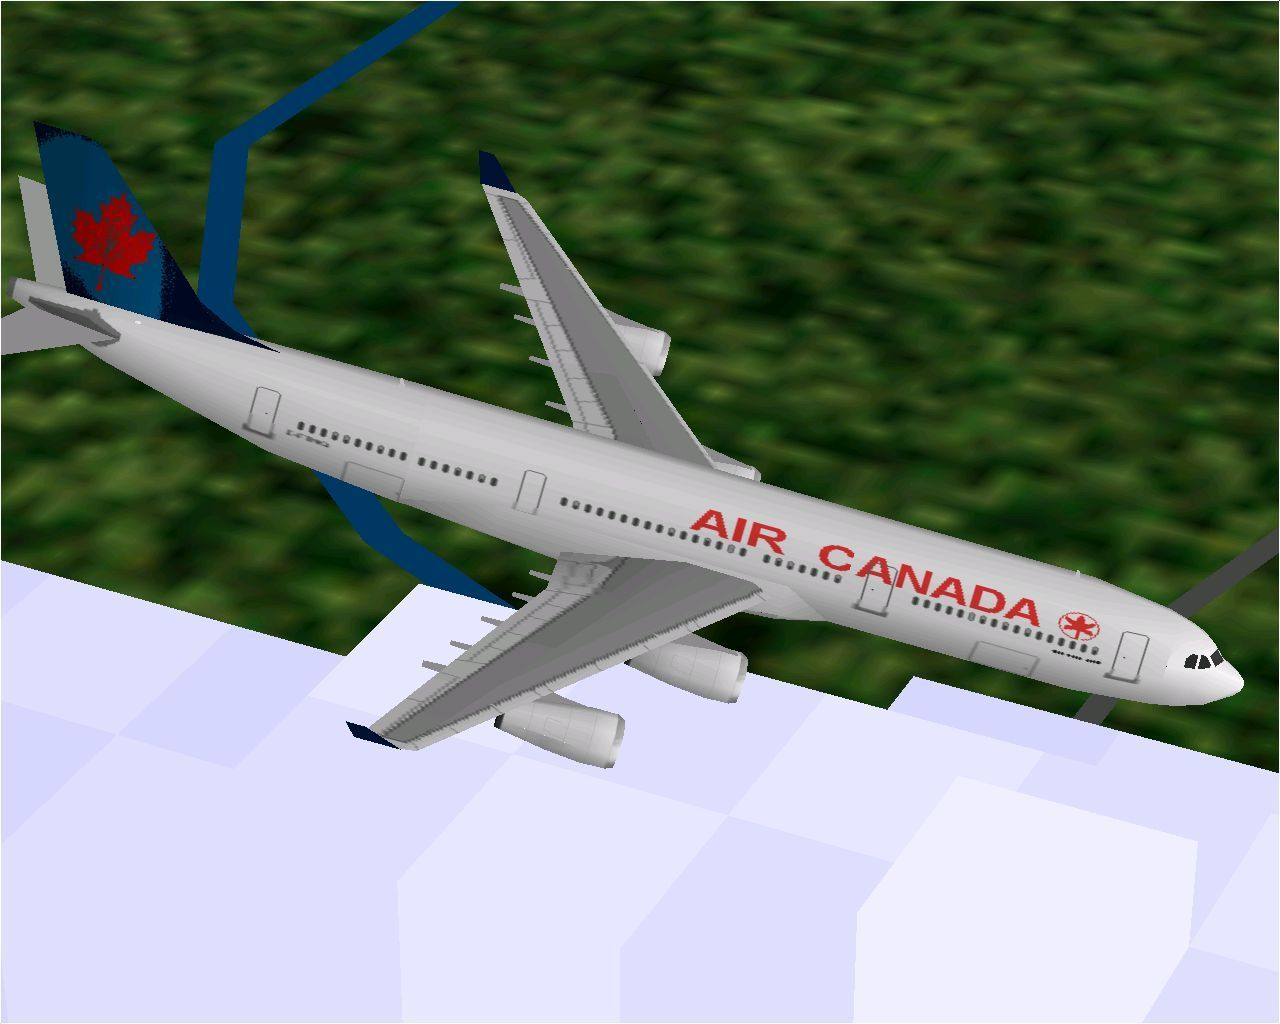 Airbus 2000: Special Edition Windows Air Canada's Airbus A340-313 flying in Microsoft Flight Simulator 98